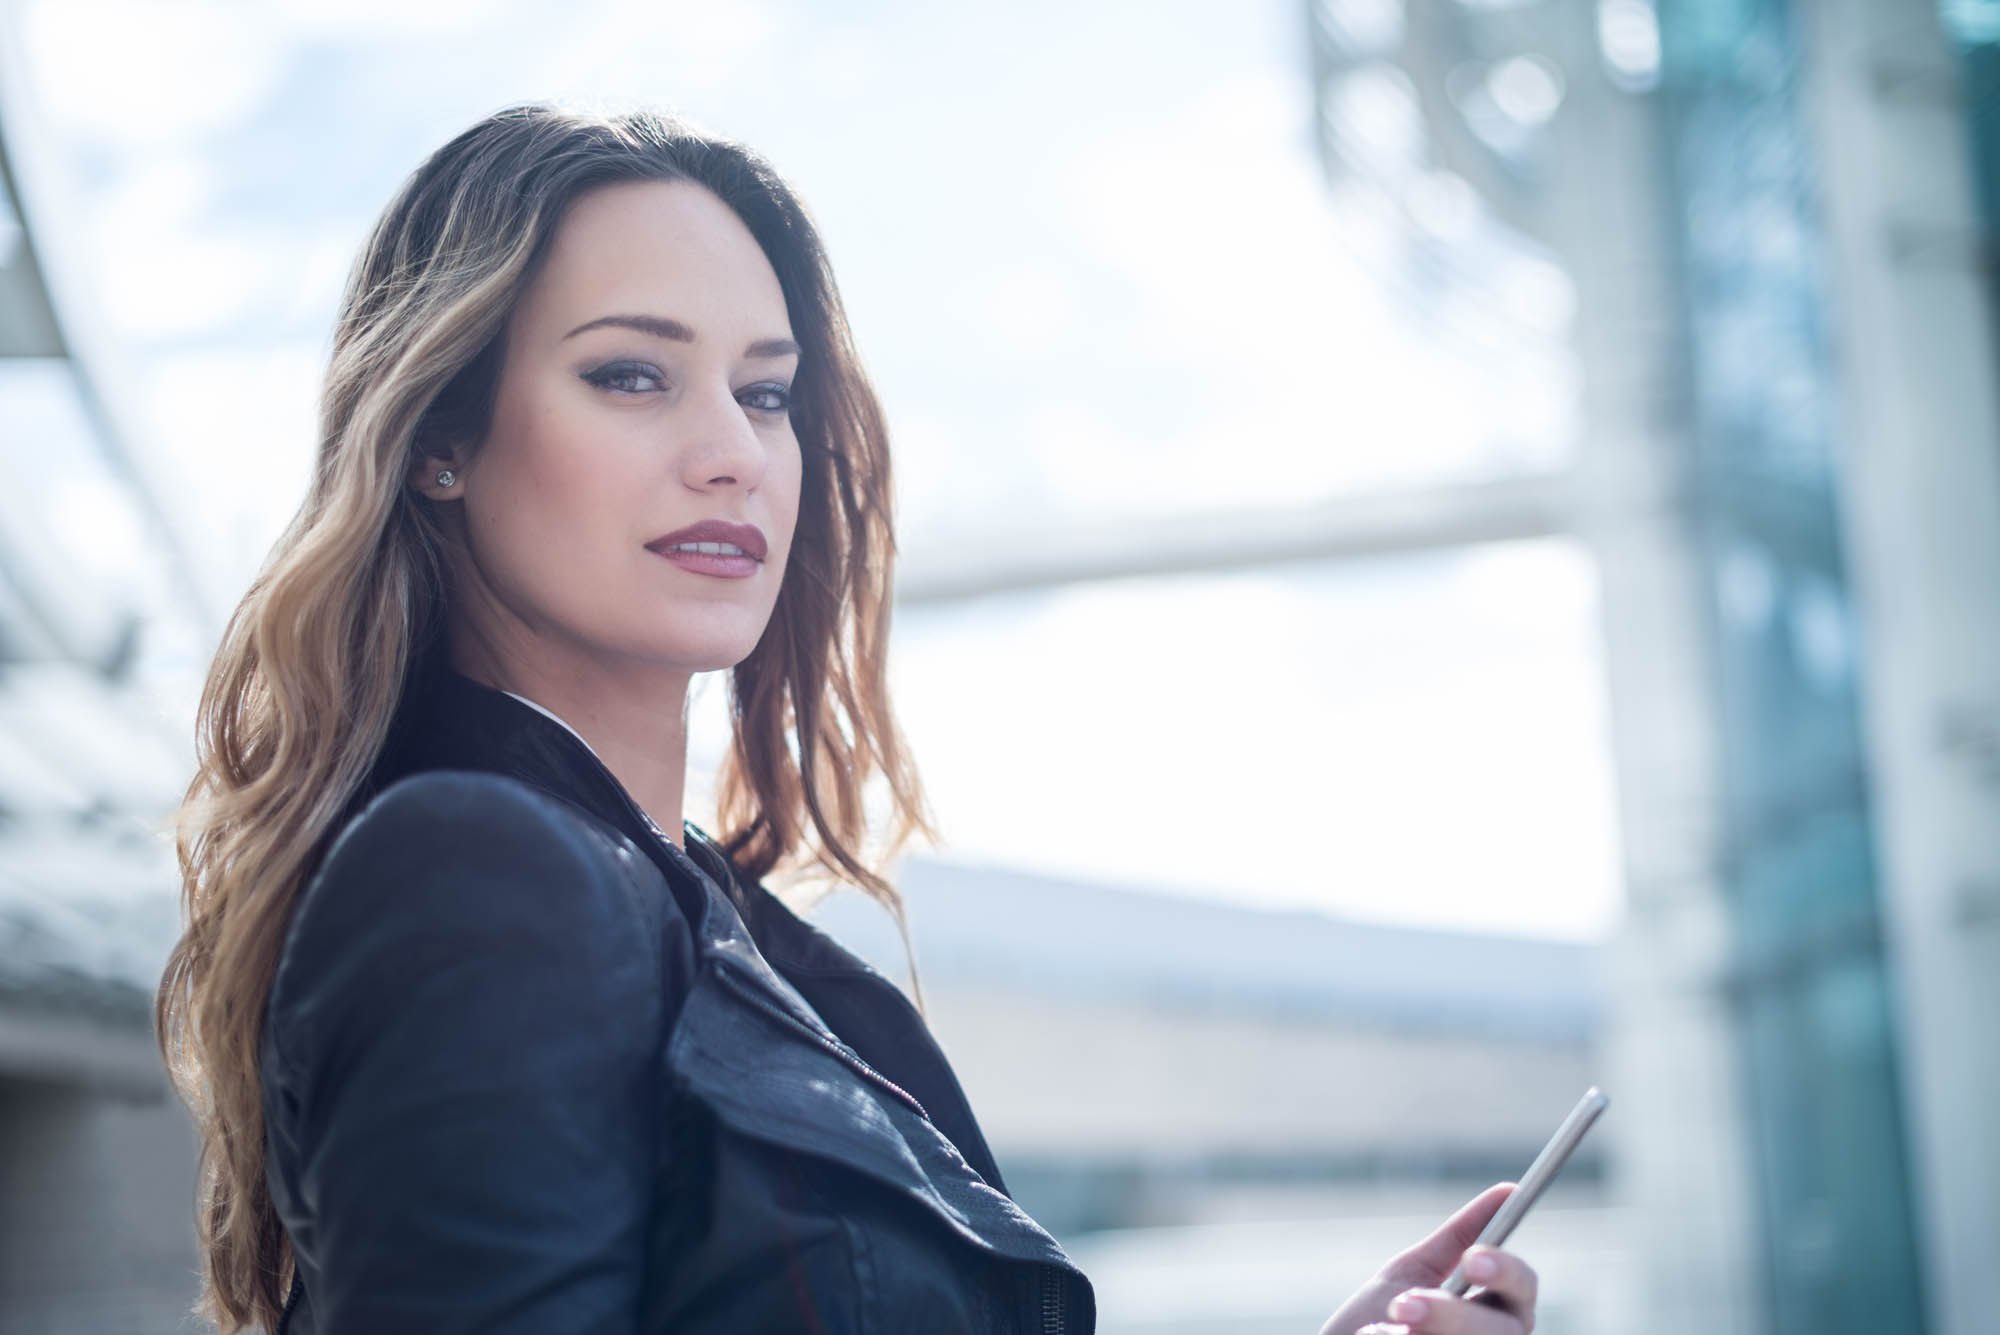 Young woman in leather jacket holding a cellphone